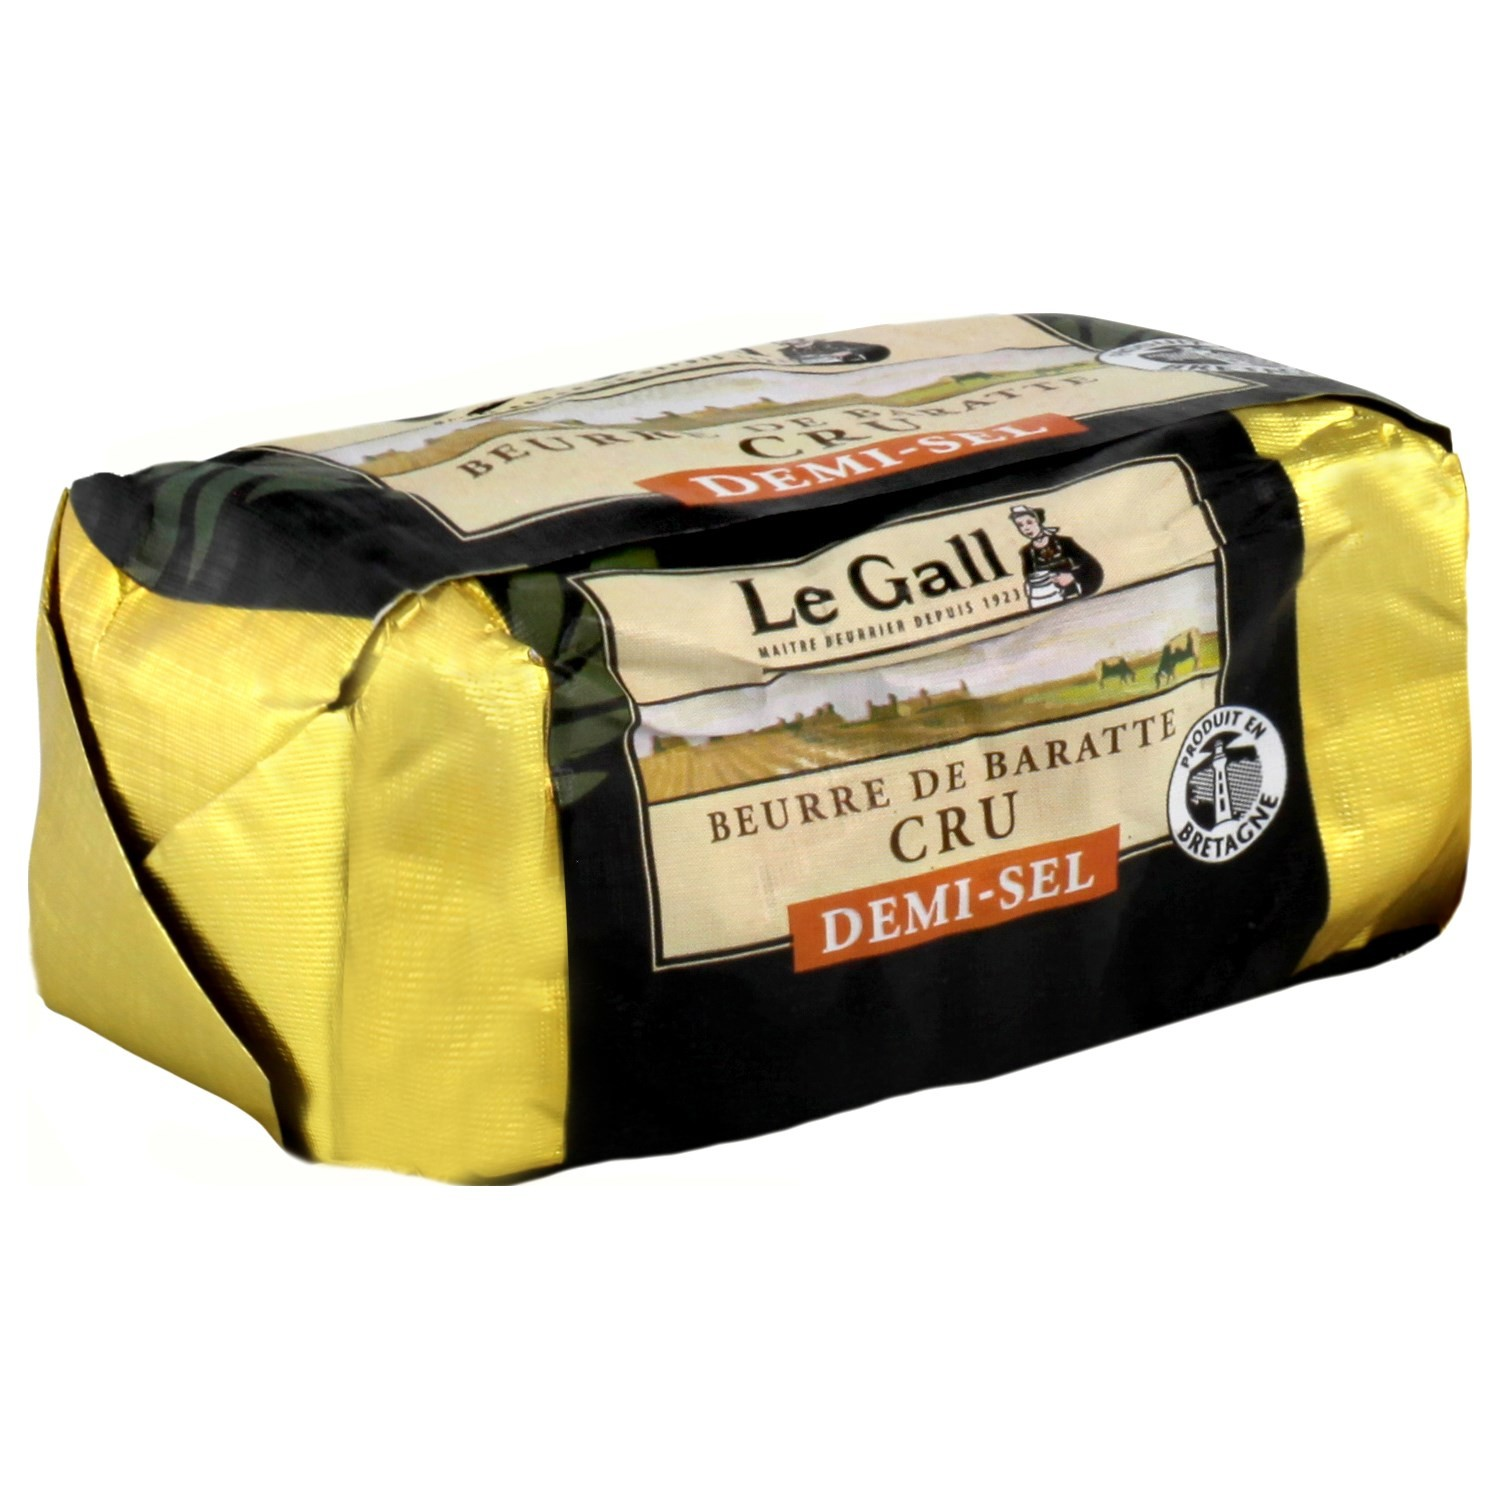 Le Gall Baratte RAW butter salted 250g